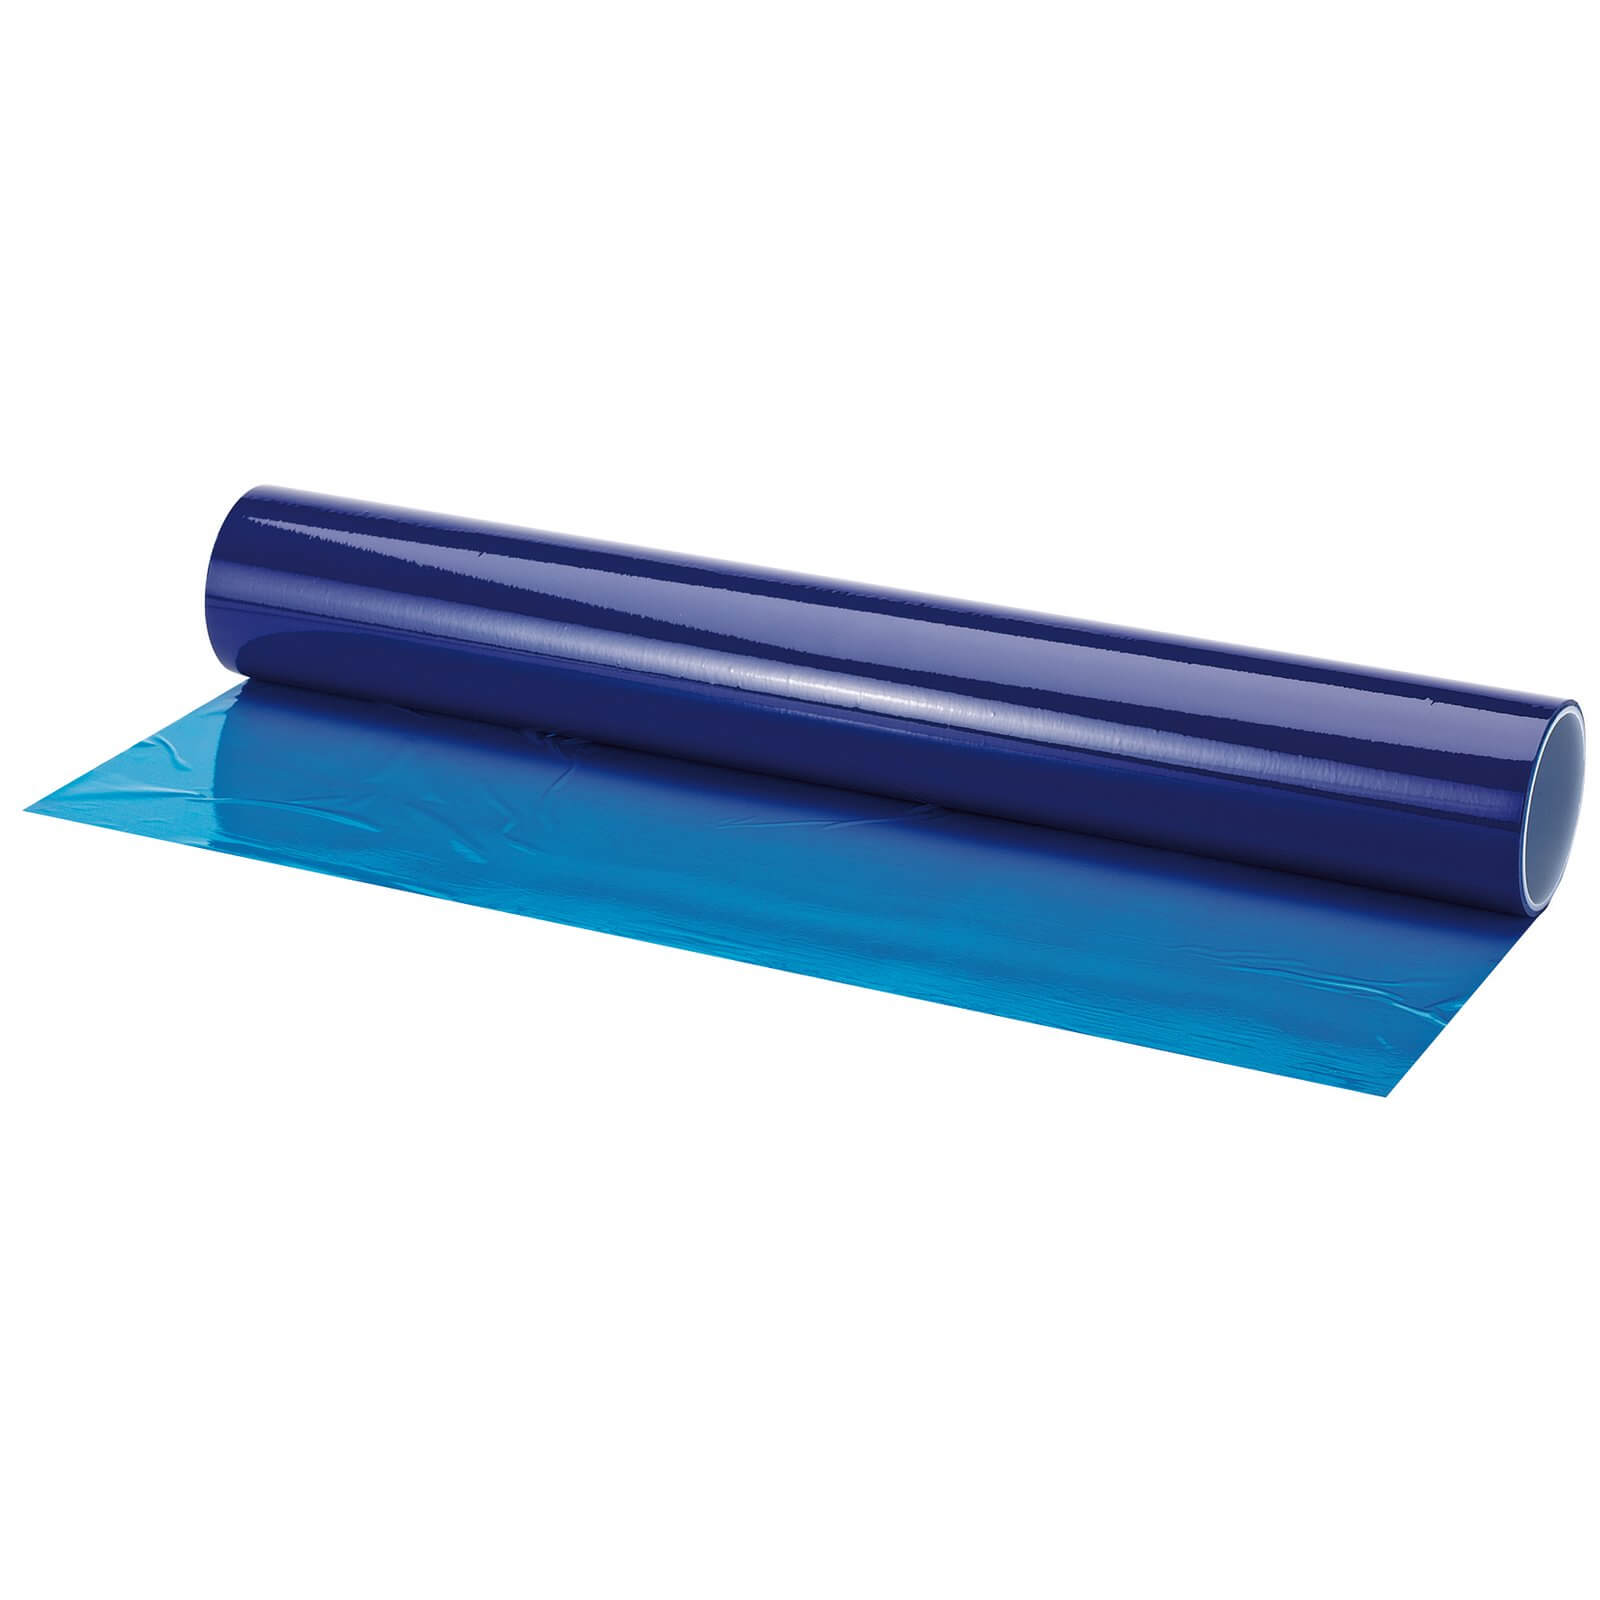 Image of Draper Hard Floor Protective Film 600mm 25m